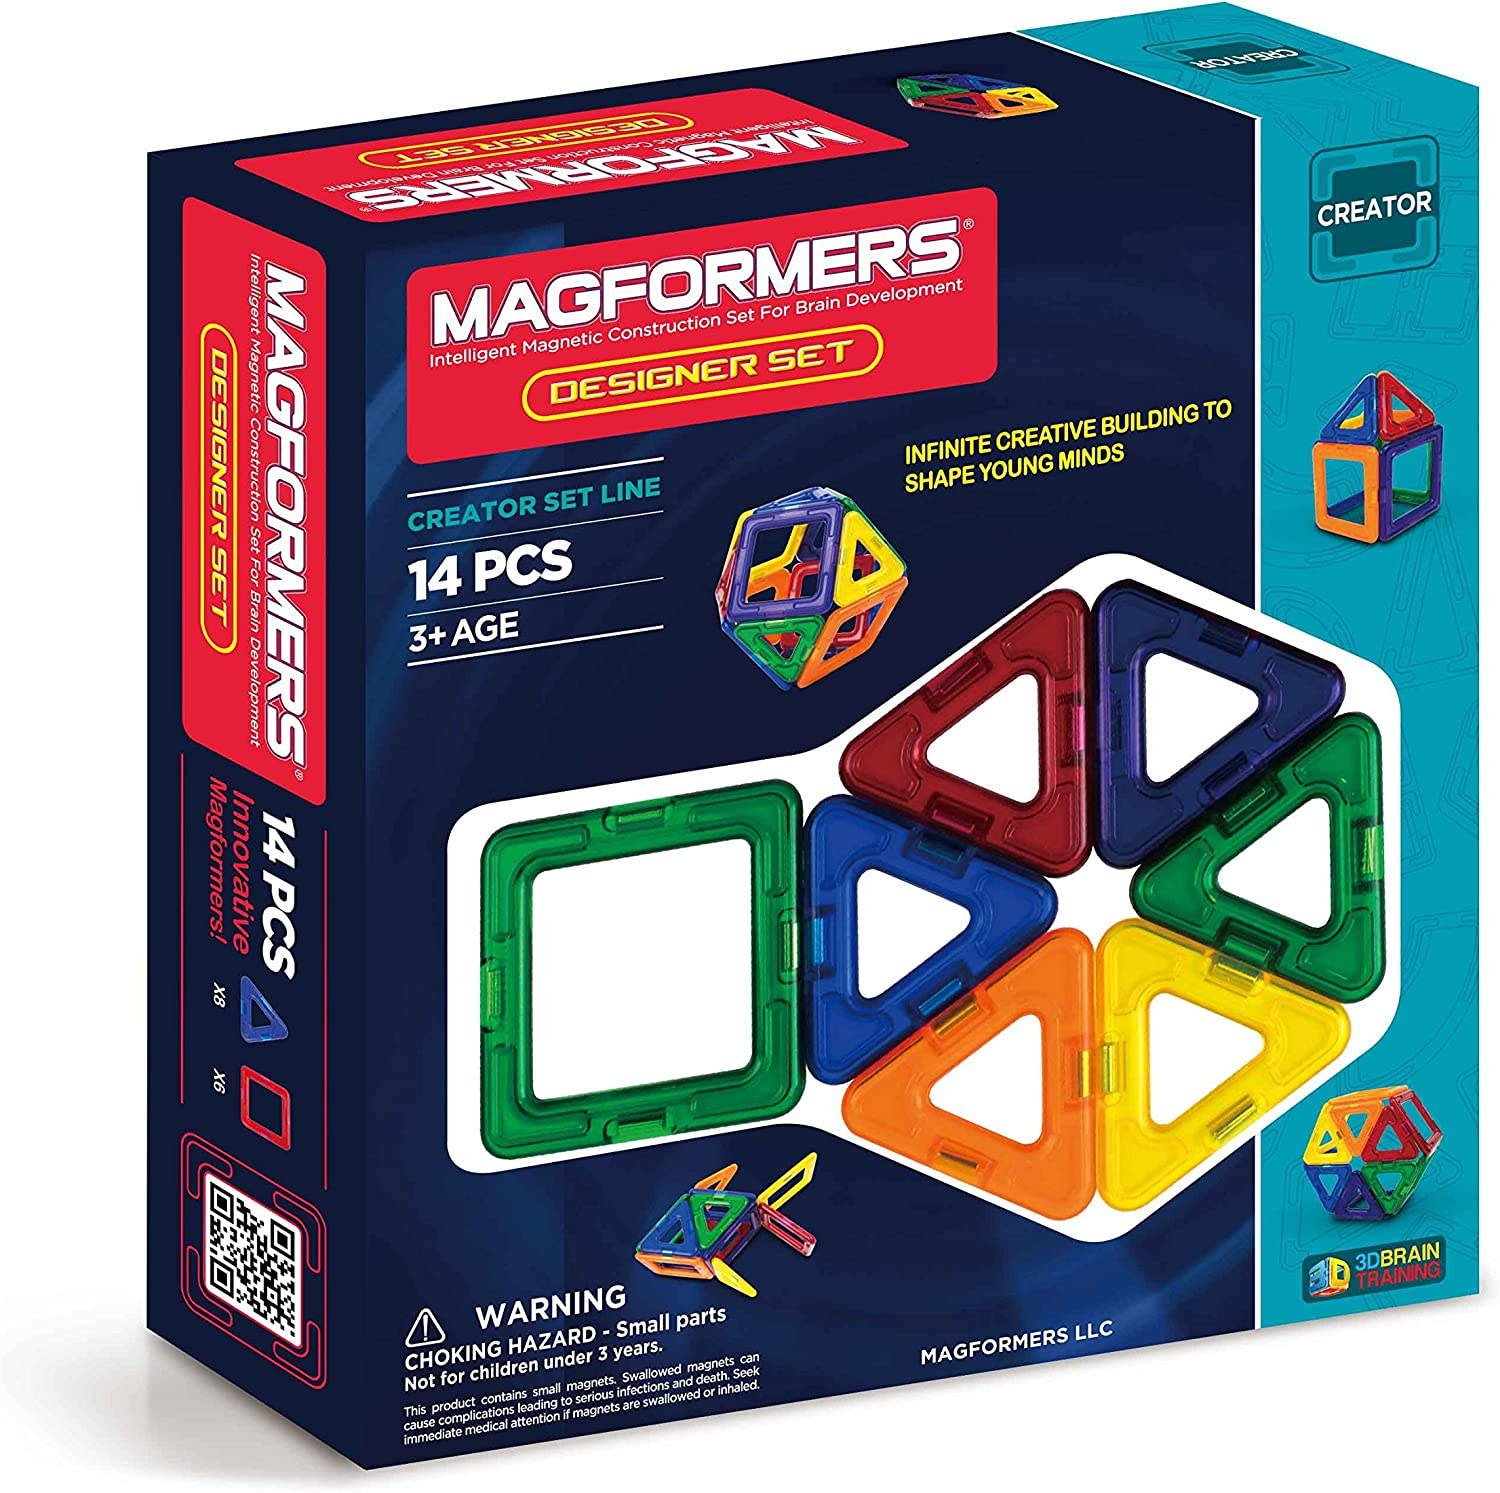 Magformers Creator Designer Set Building 14-Pieces Max 85% OFF National uniform free shipping Magnetic Bl